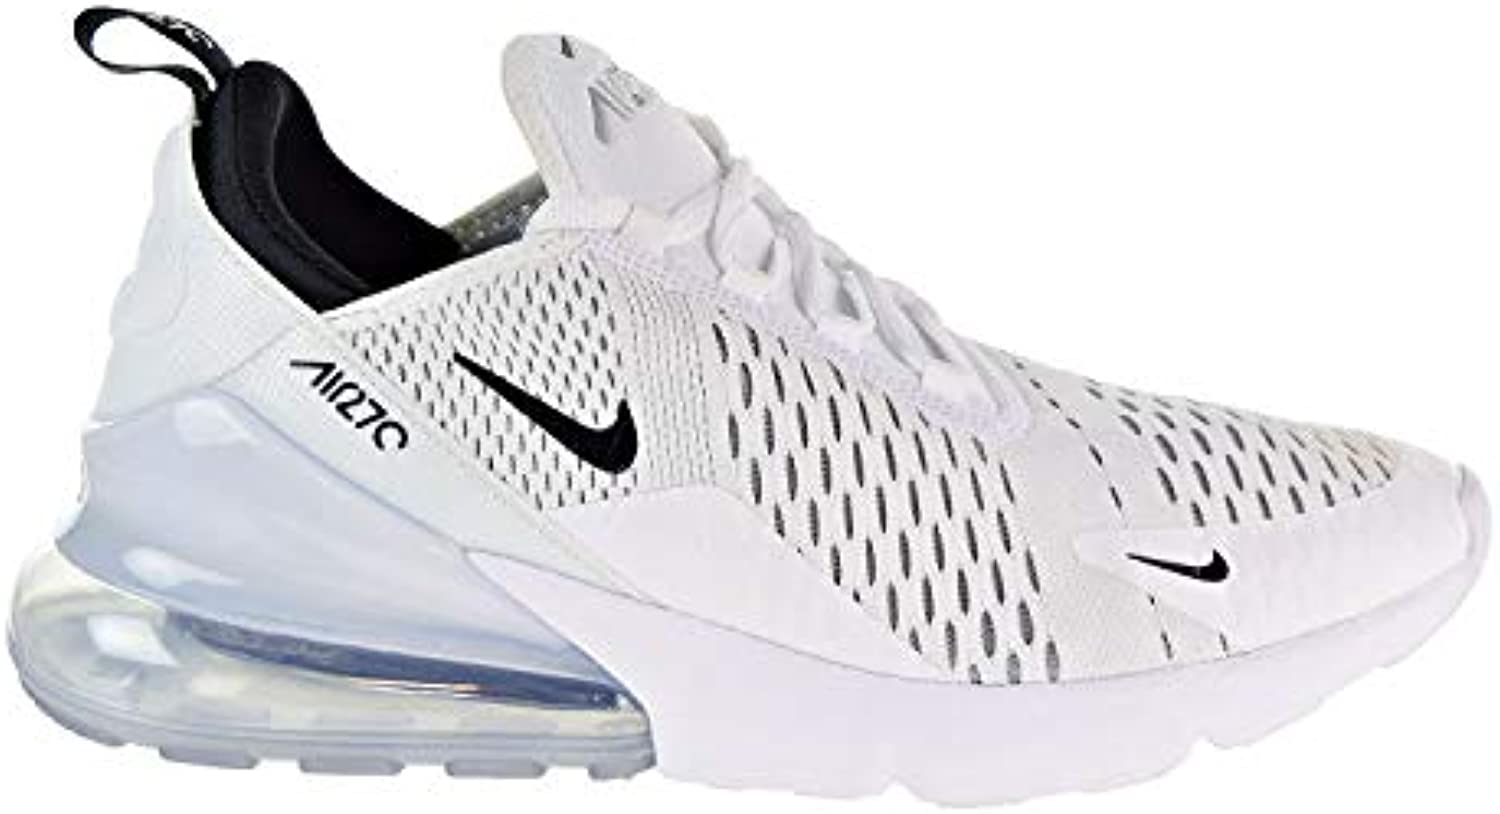 best sale new lifestyle lowest discount les hommes femmes femmes femmes nike air max 270 g ...